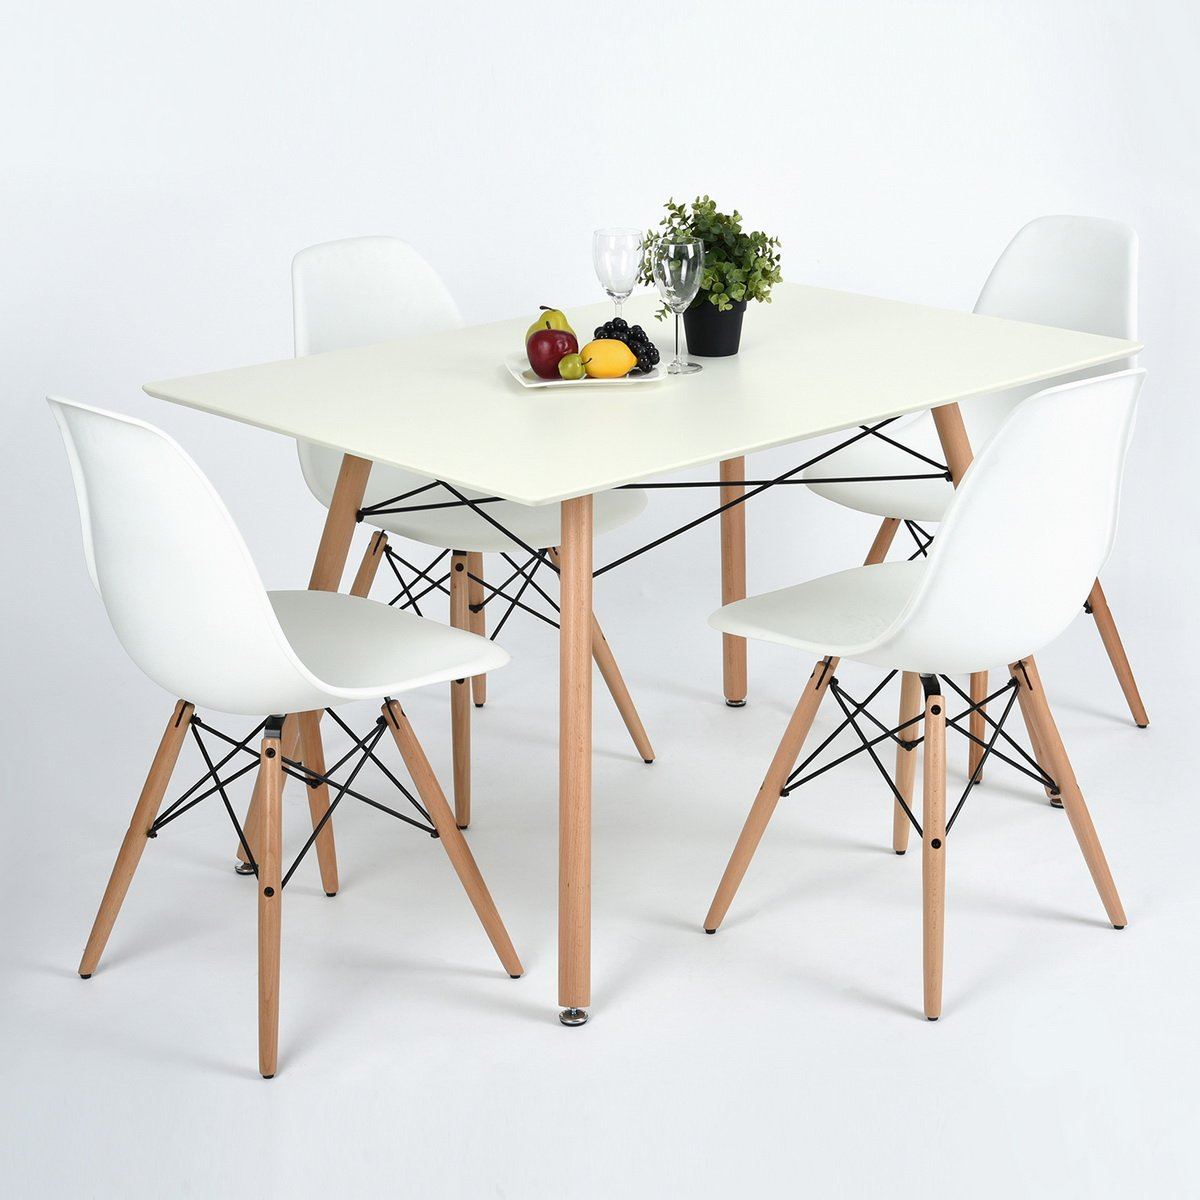 FurnitureR Dining Set Set of 4 Chairs & Square Table Modern Retro Design Side Chairs Desk for Dining Room Waiting Room Bedroom Kitchen